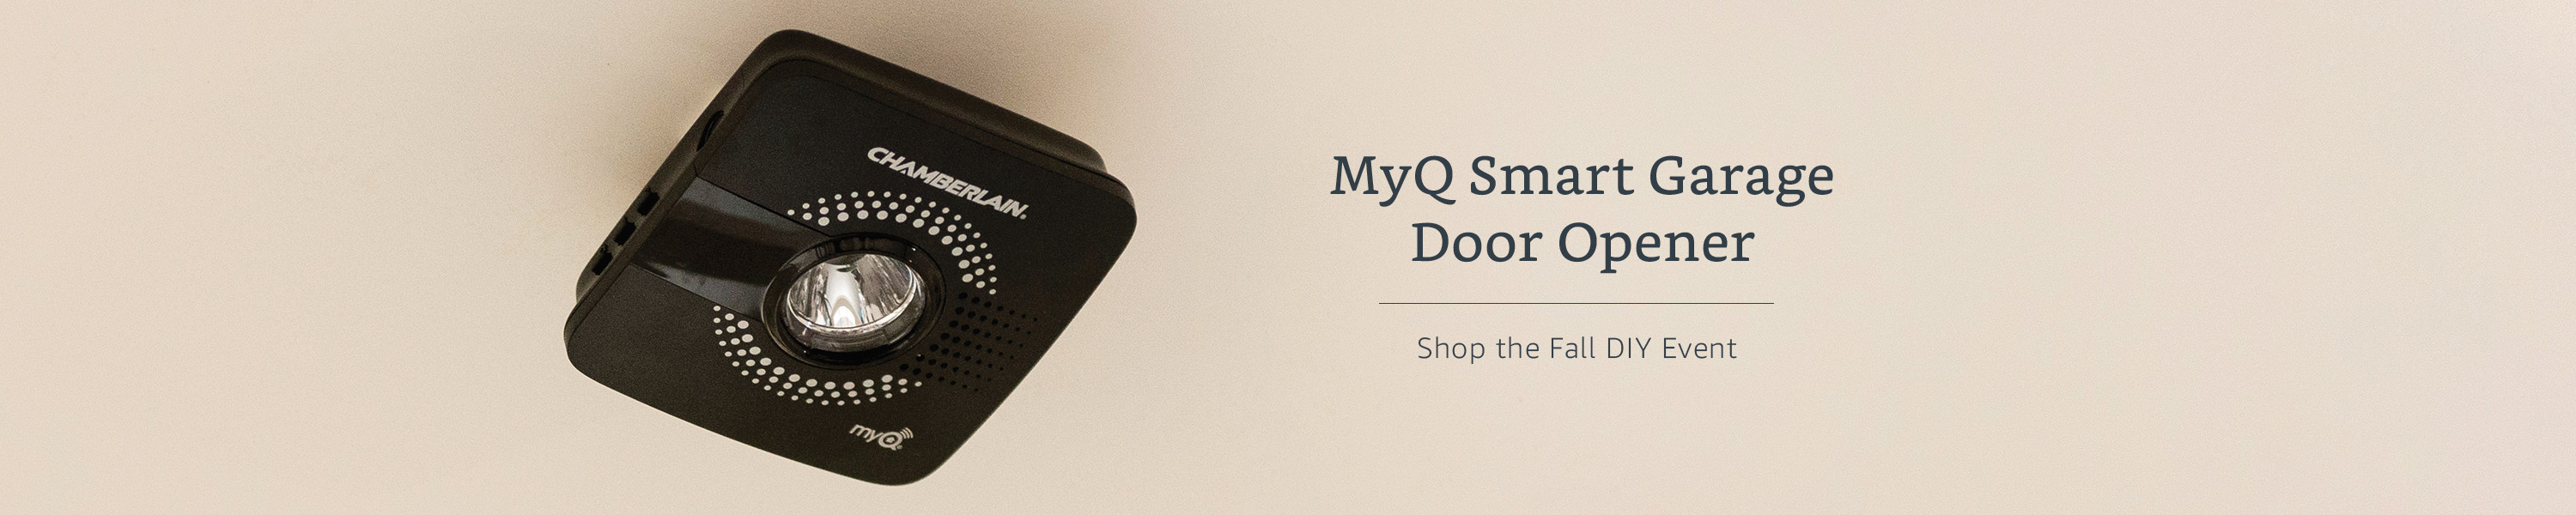 MyQ Smart Garage Opener. Shop the Fall DIY Event.